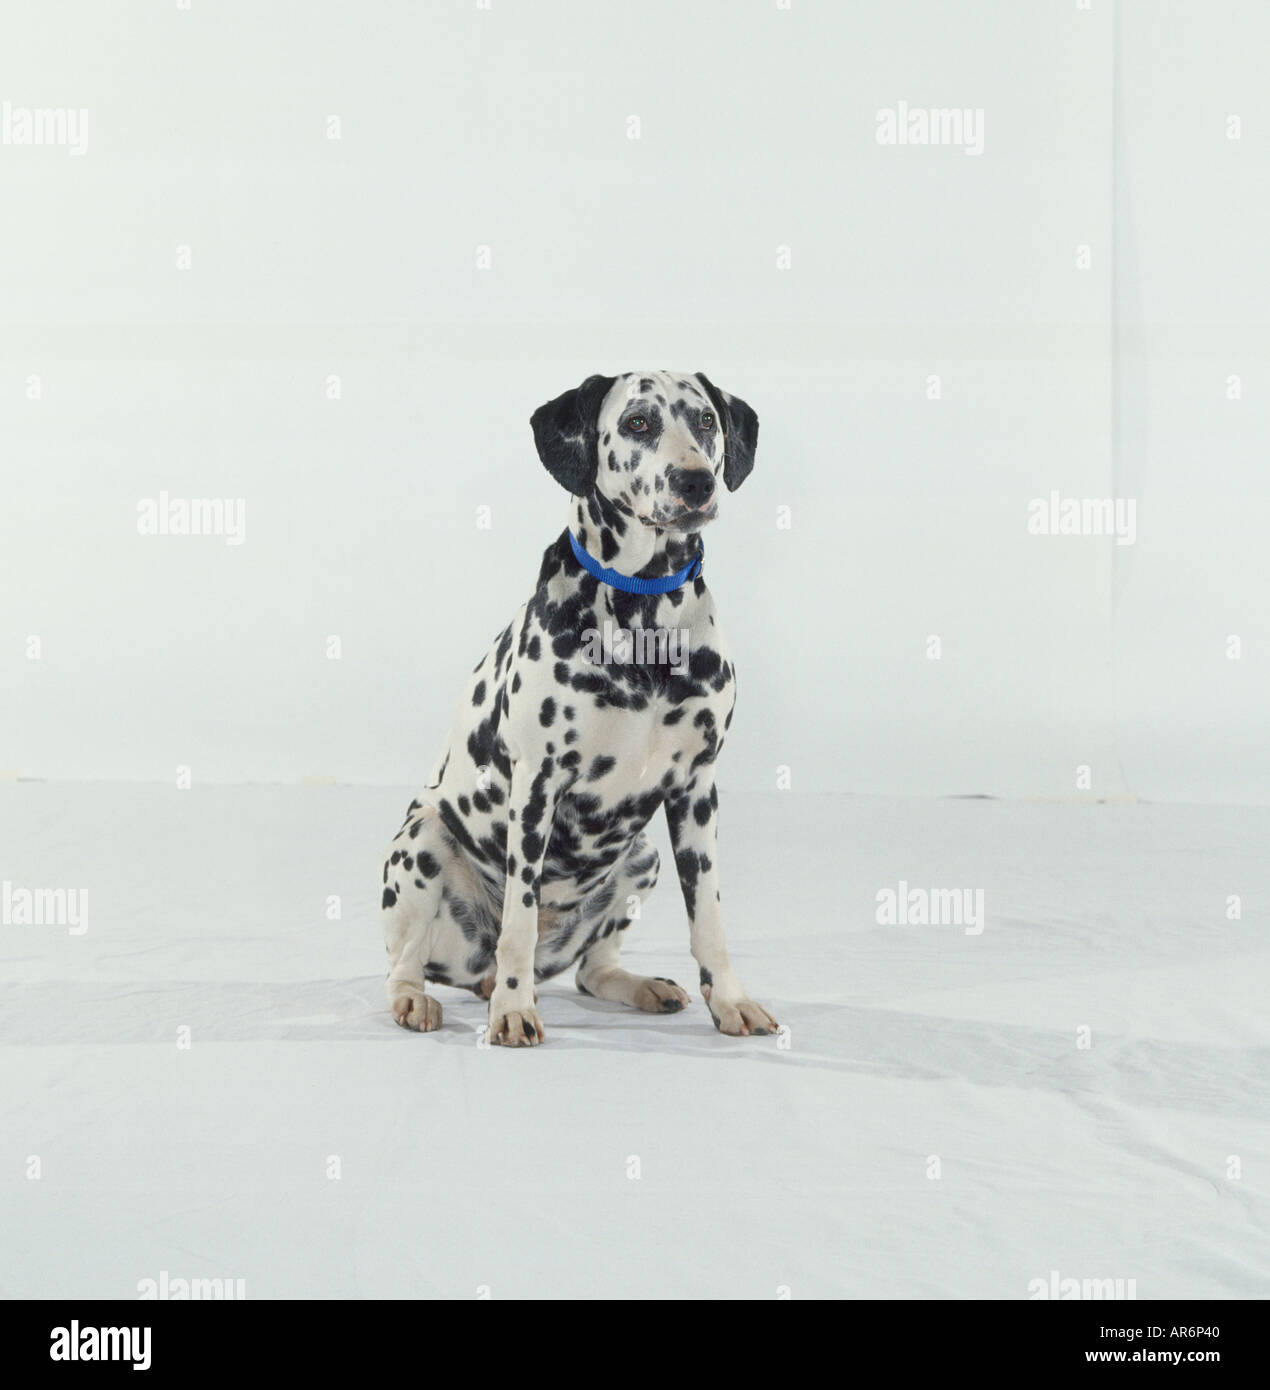 Spotty Black And White Dalmatian Sitting Wearing Blue Collar Front View